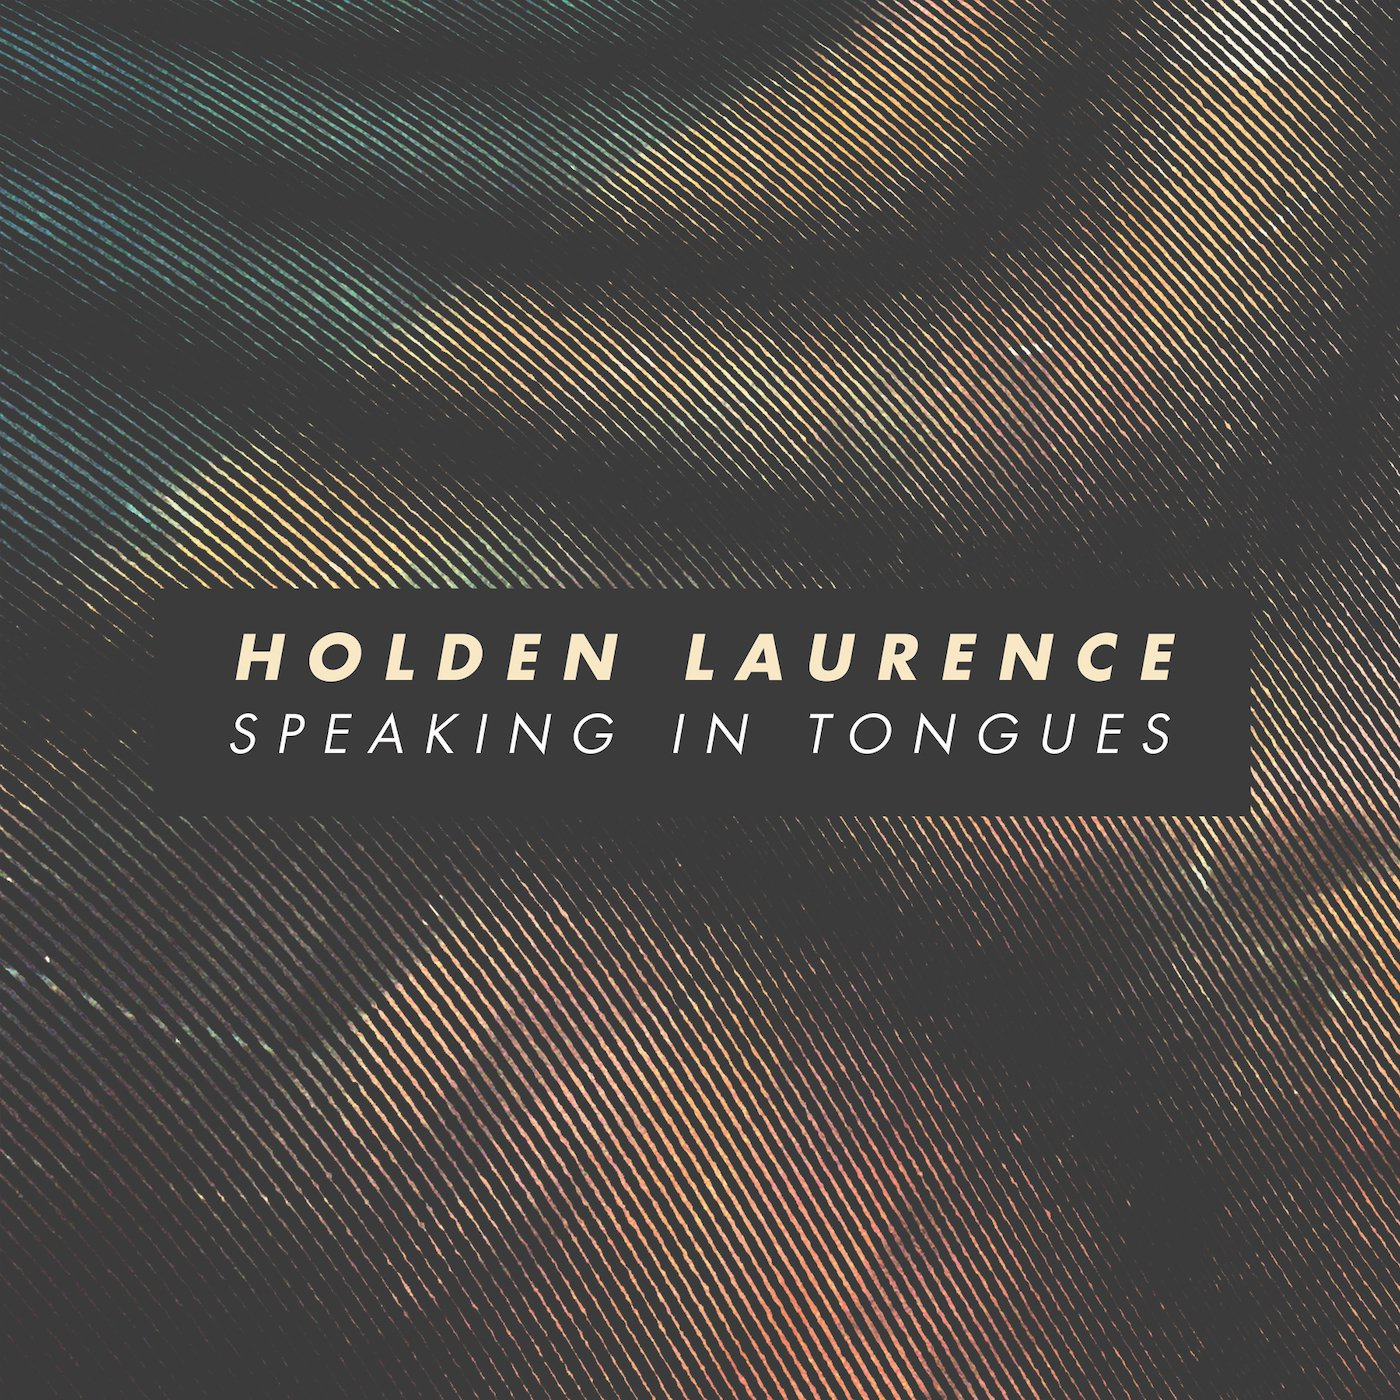 Holden Lawrence, Speaking in Tongues, Dream Pop, Indie, Blog, Blogger, News, Media, Single, Article, Review, Pop, Picky Magazine, Magazin, Picky